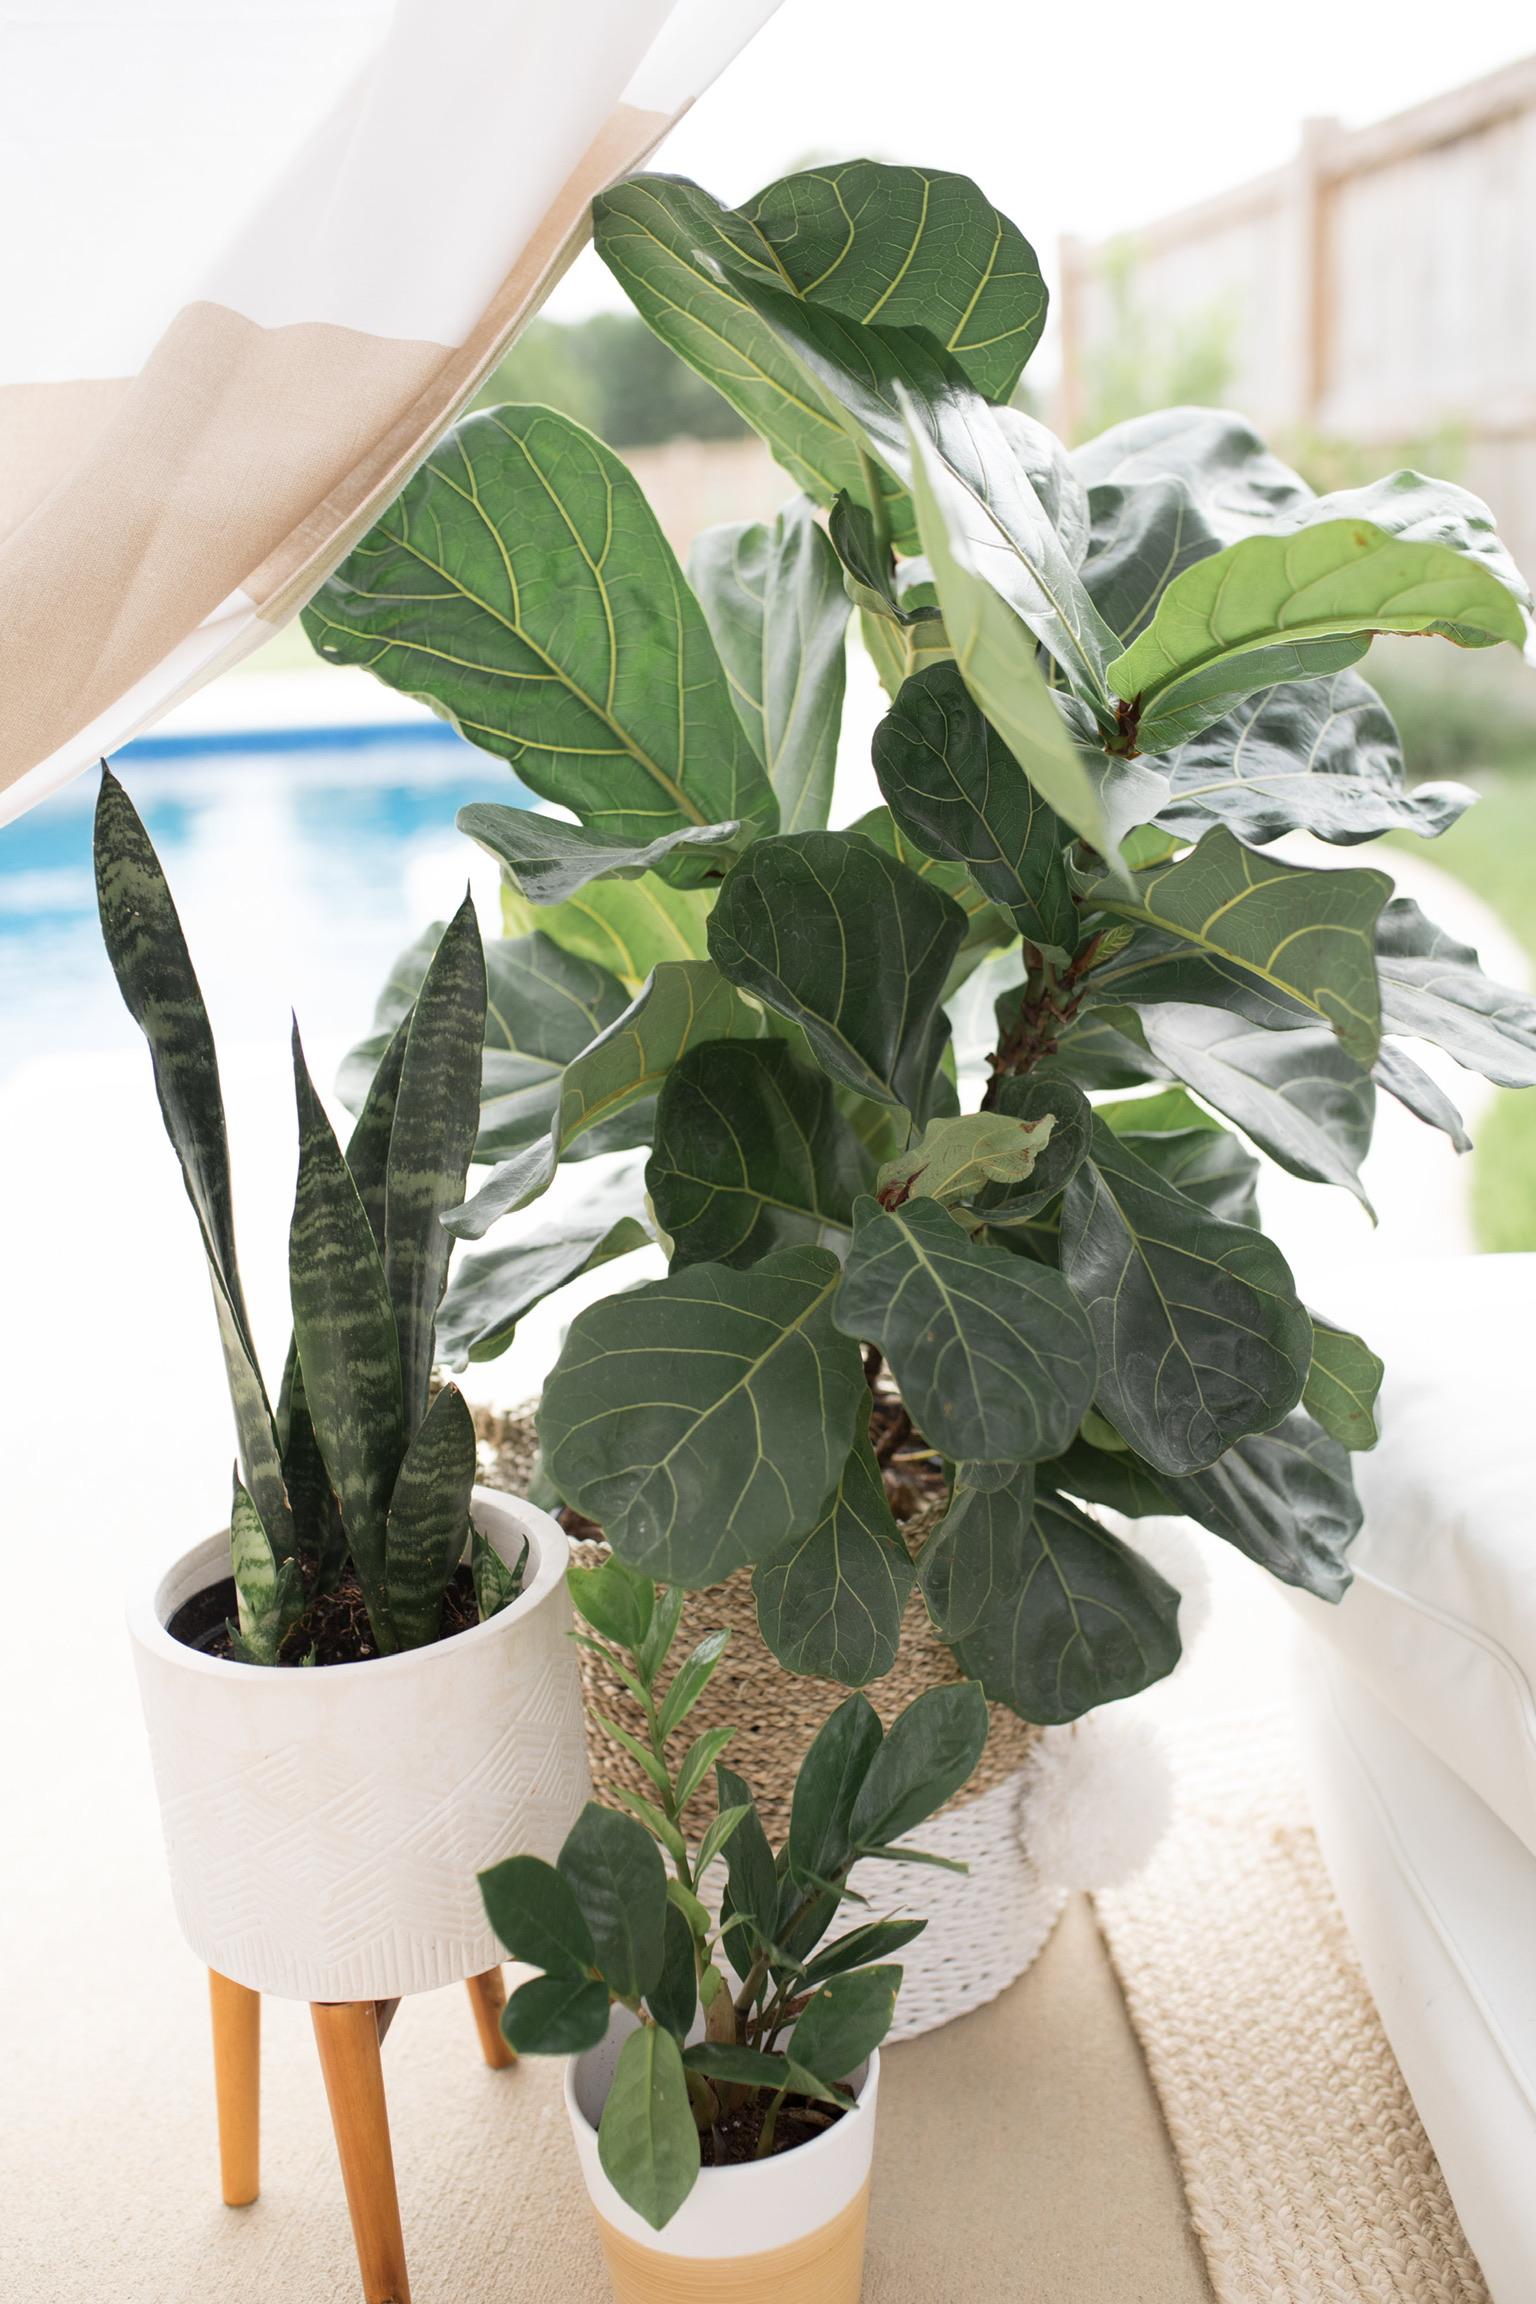 Go green with some live plants